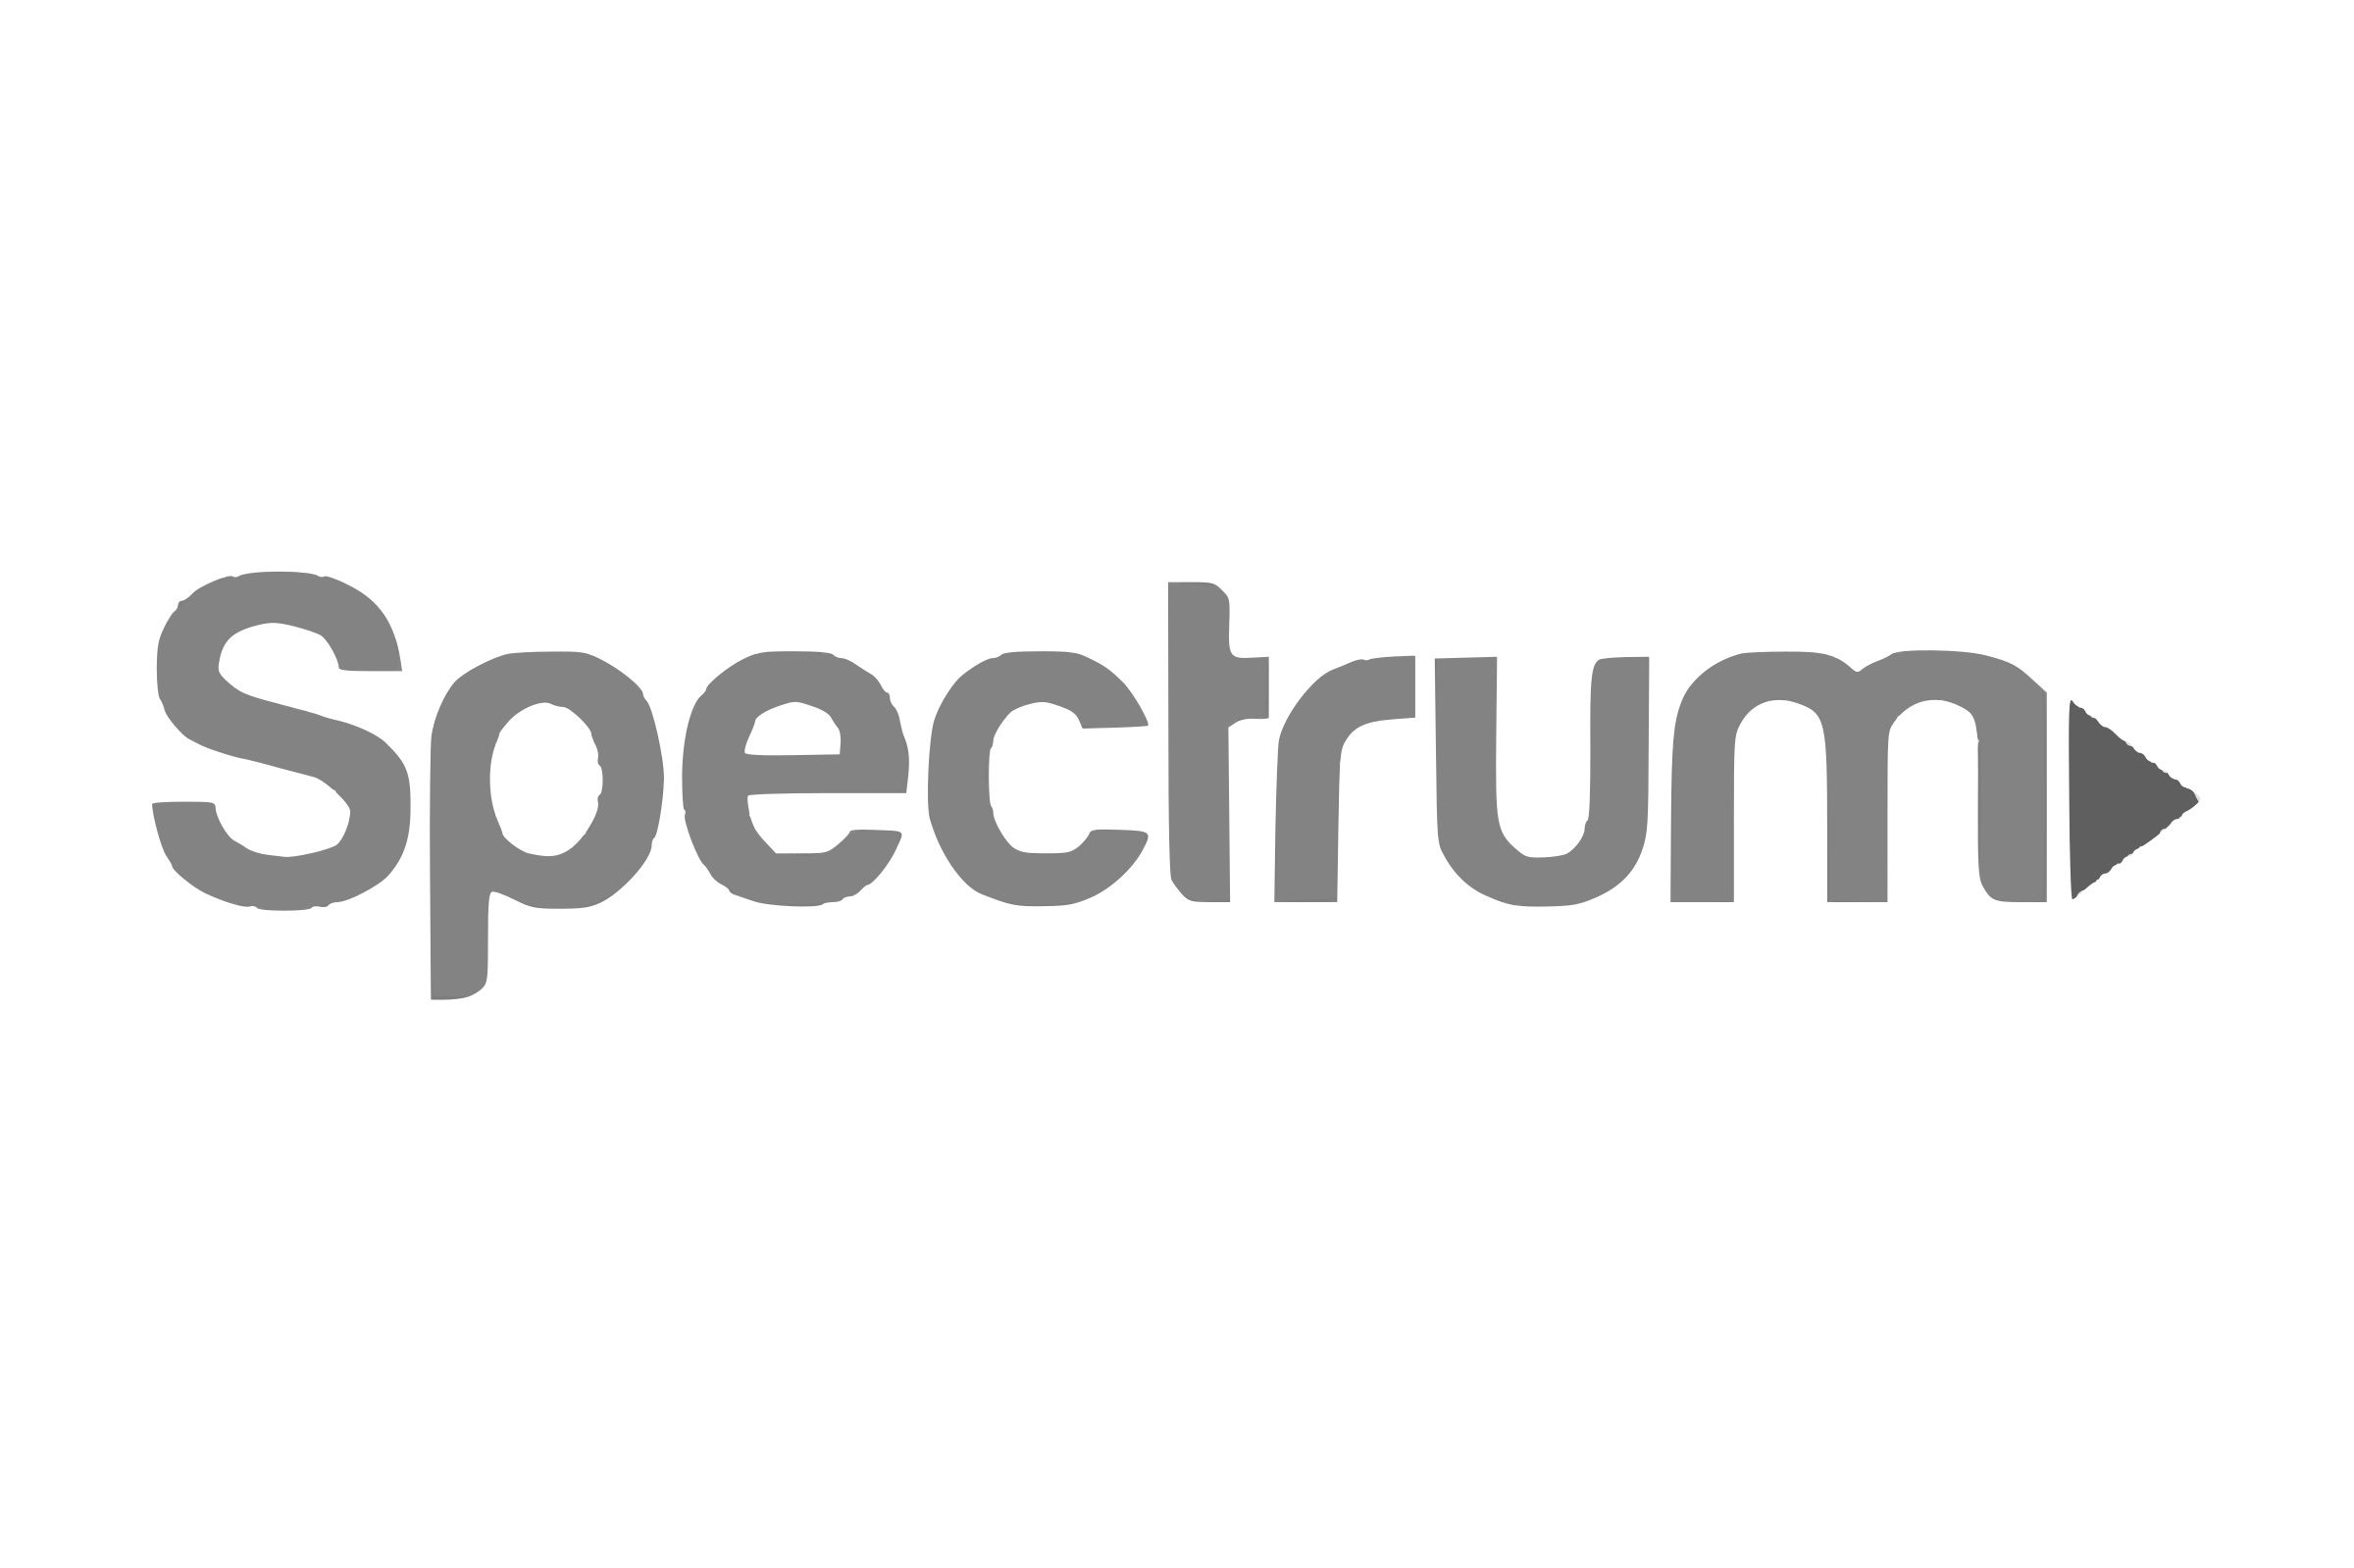 spectrum-3-logo-png-transparent.png